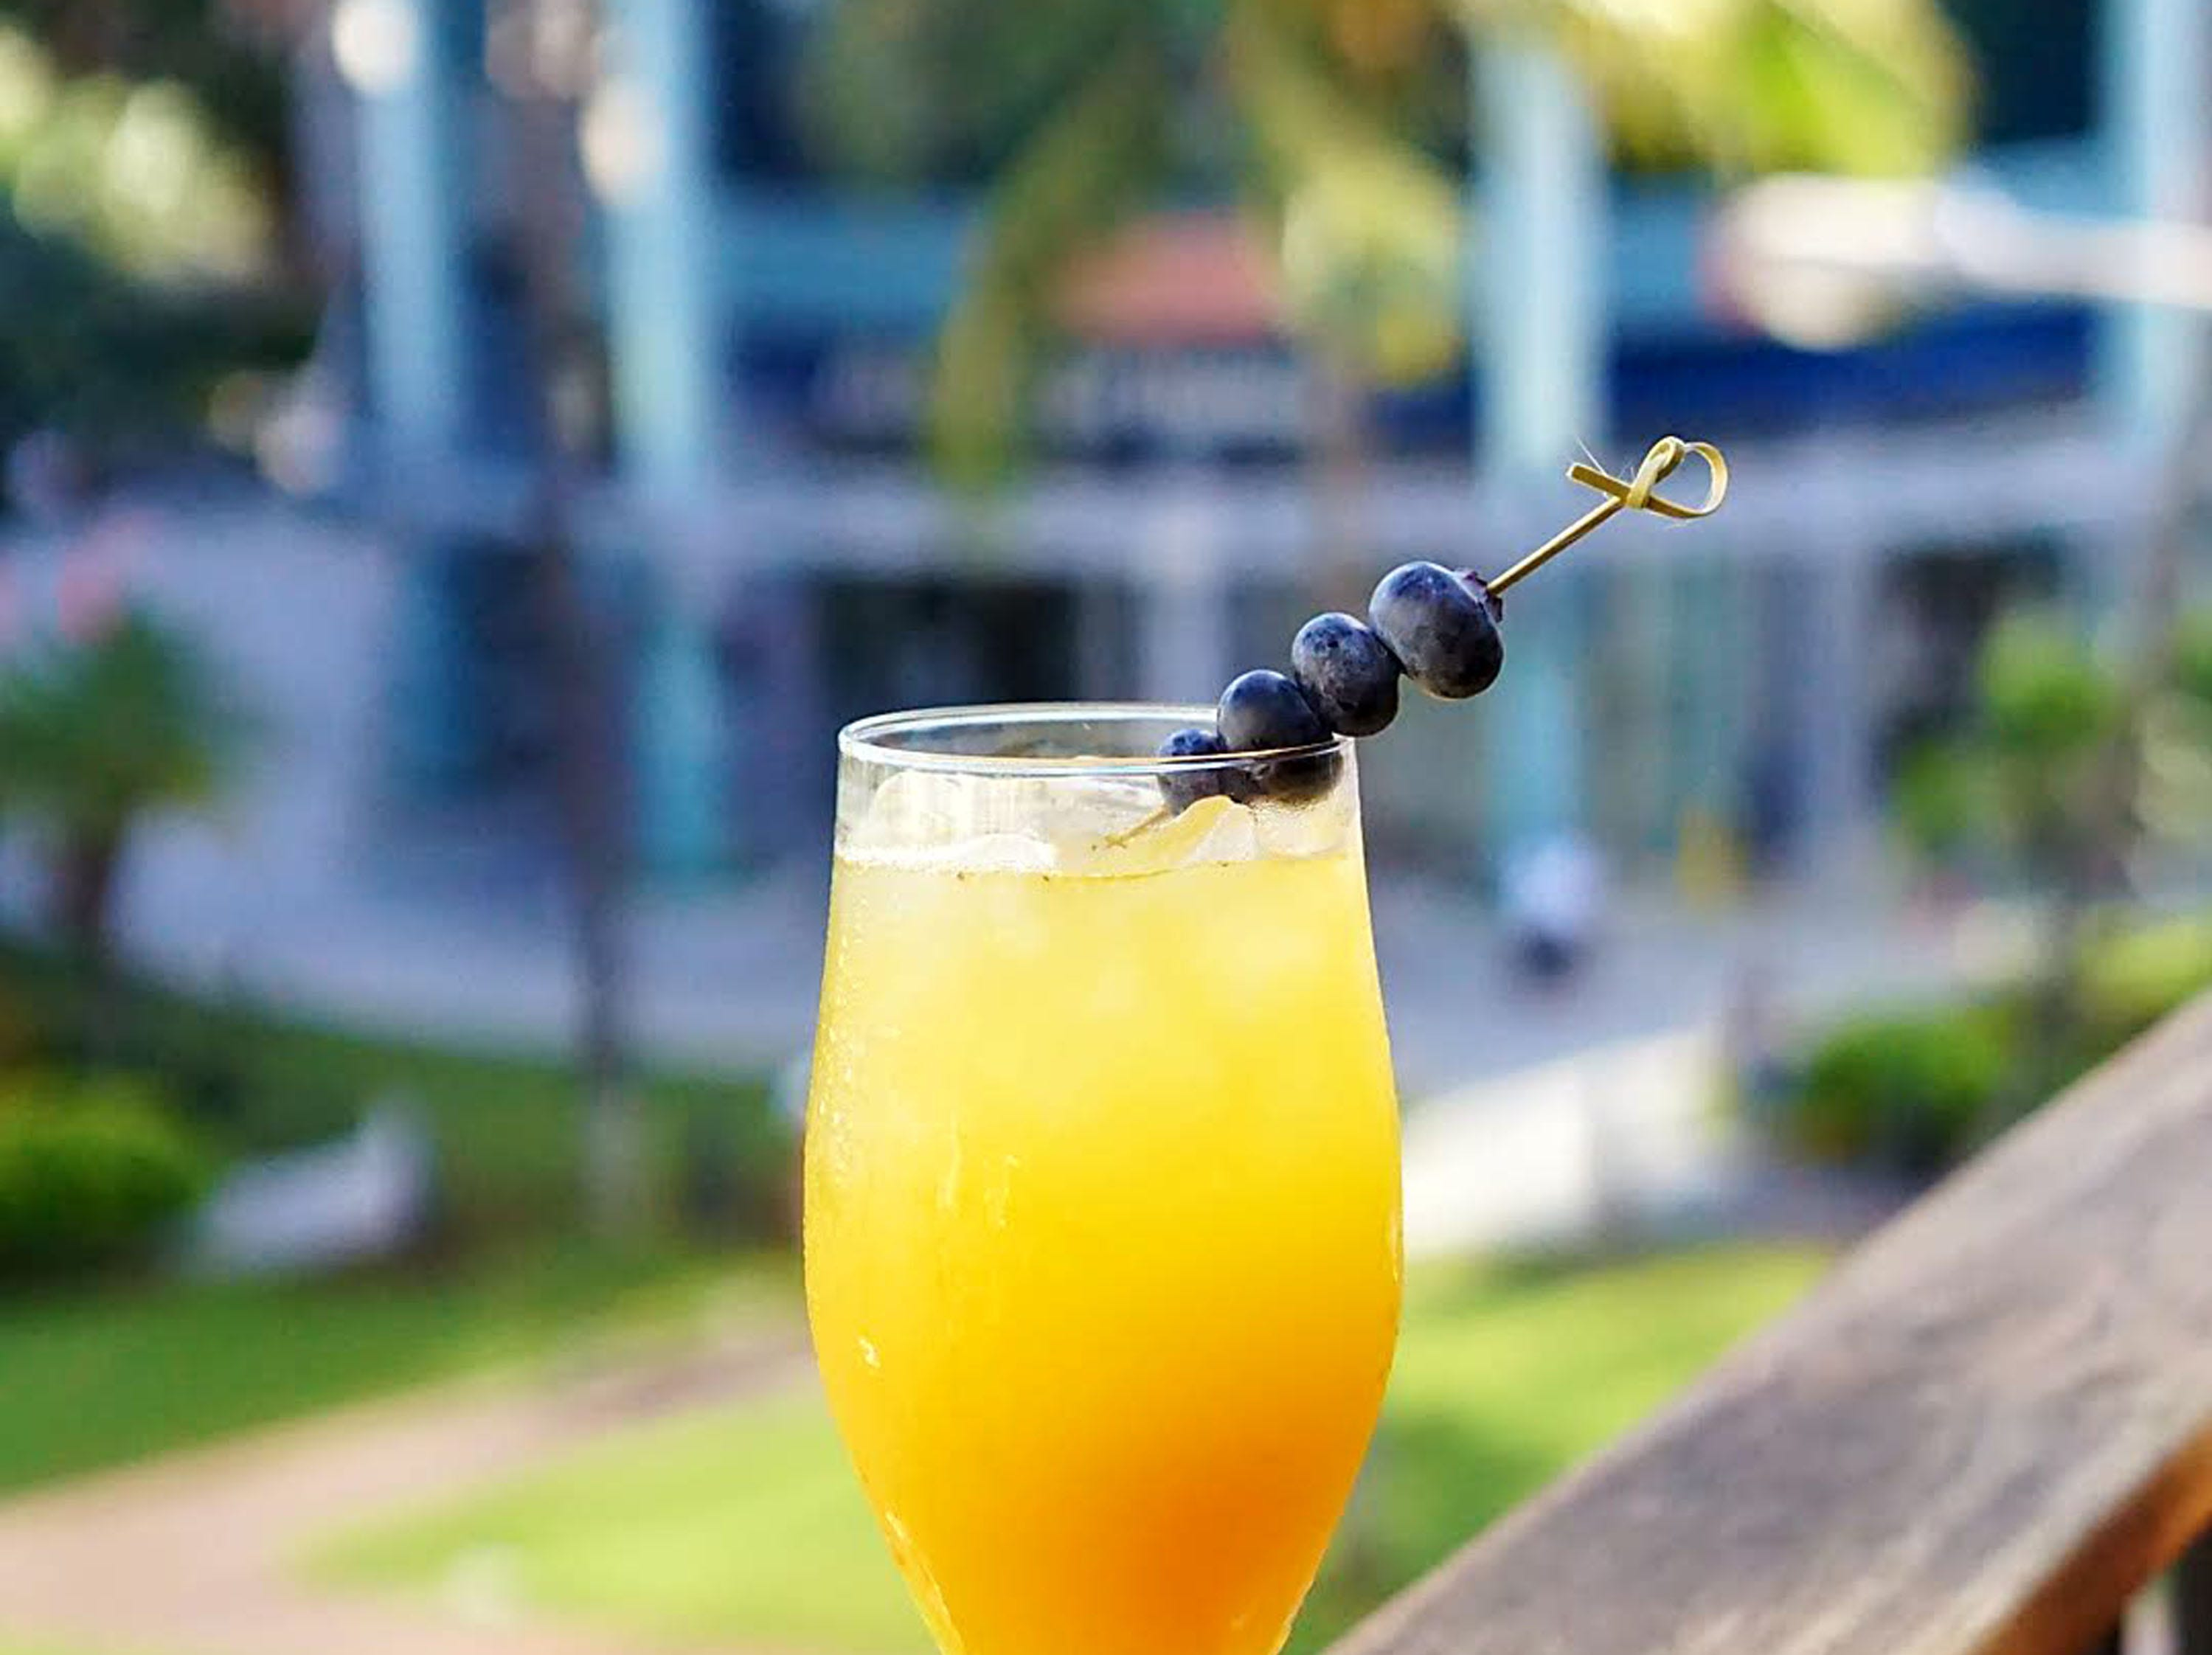 The Blue My Mind at Tommy Bahama with locations nationwide. It's made from muddled blueberries, passion fruit and scratch lemonade.